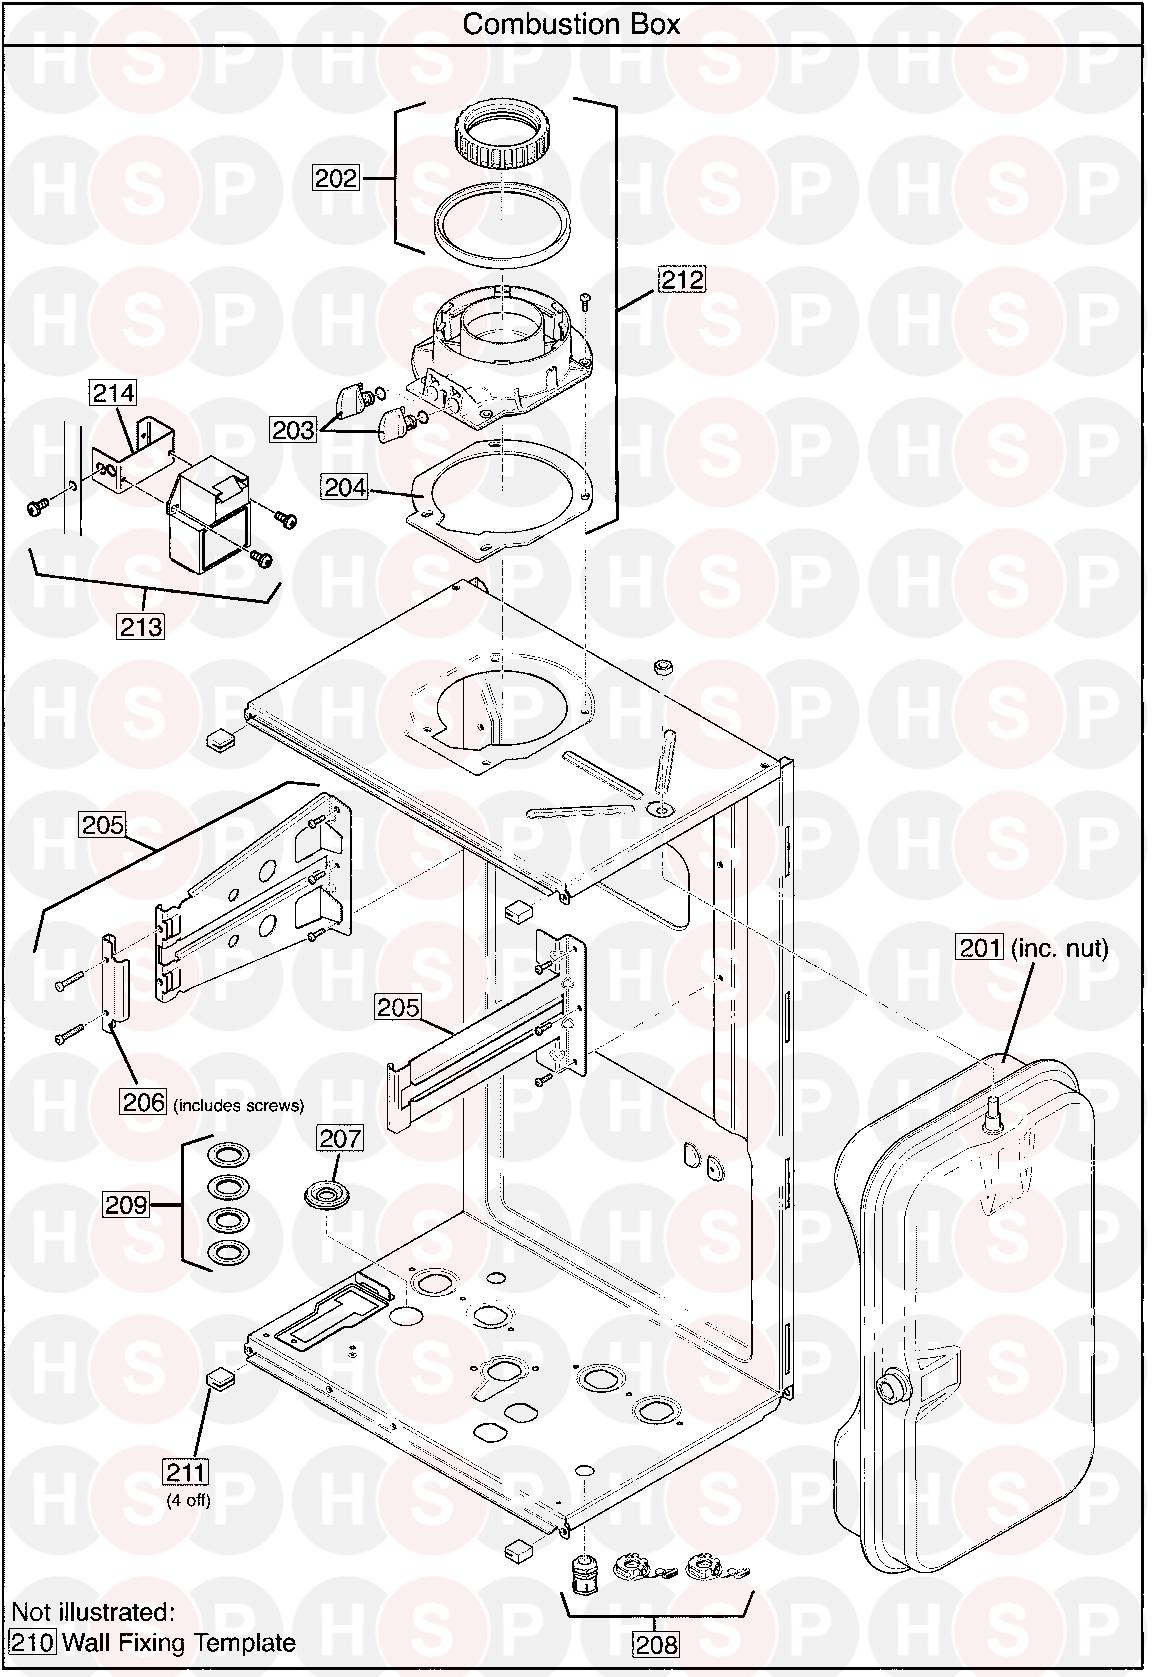 COMBUSTION BOX diagram for Baxi SYSTEM 12